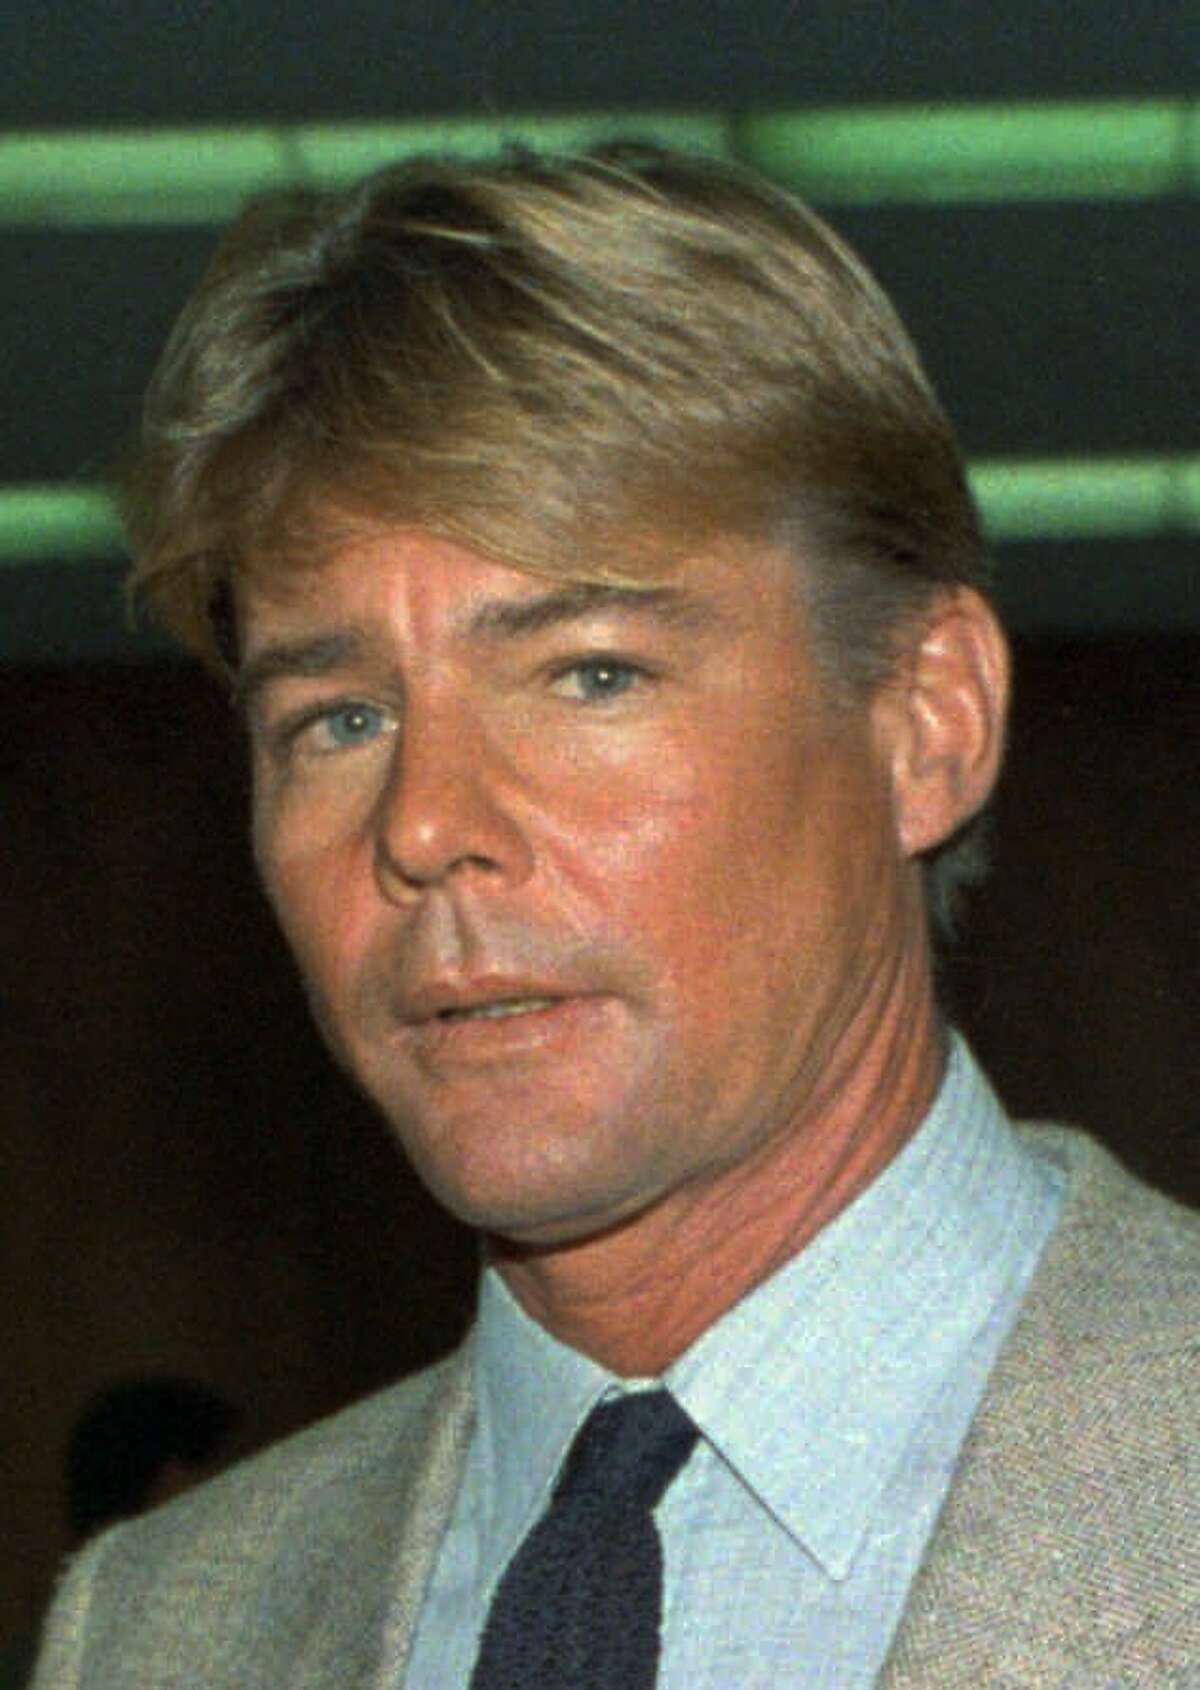 """FILE - This September 1986 file photo shows actor Jan-Michael Vincent. Vincent, known for starring in the television series """"Airwolf,"""" died Feb. 10, 2019. He was 73. (AP Photo/Nick Ut, File)"""